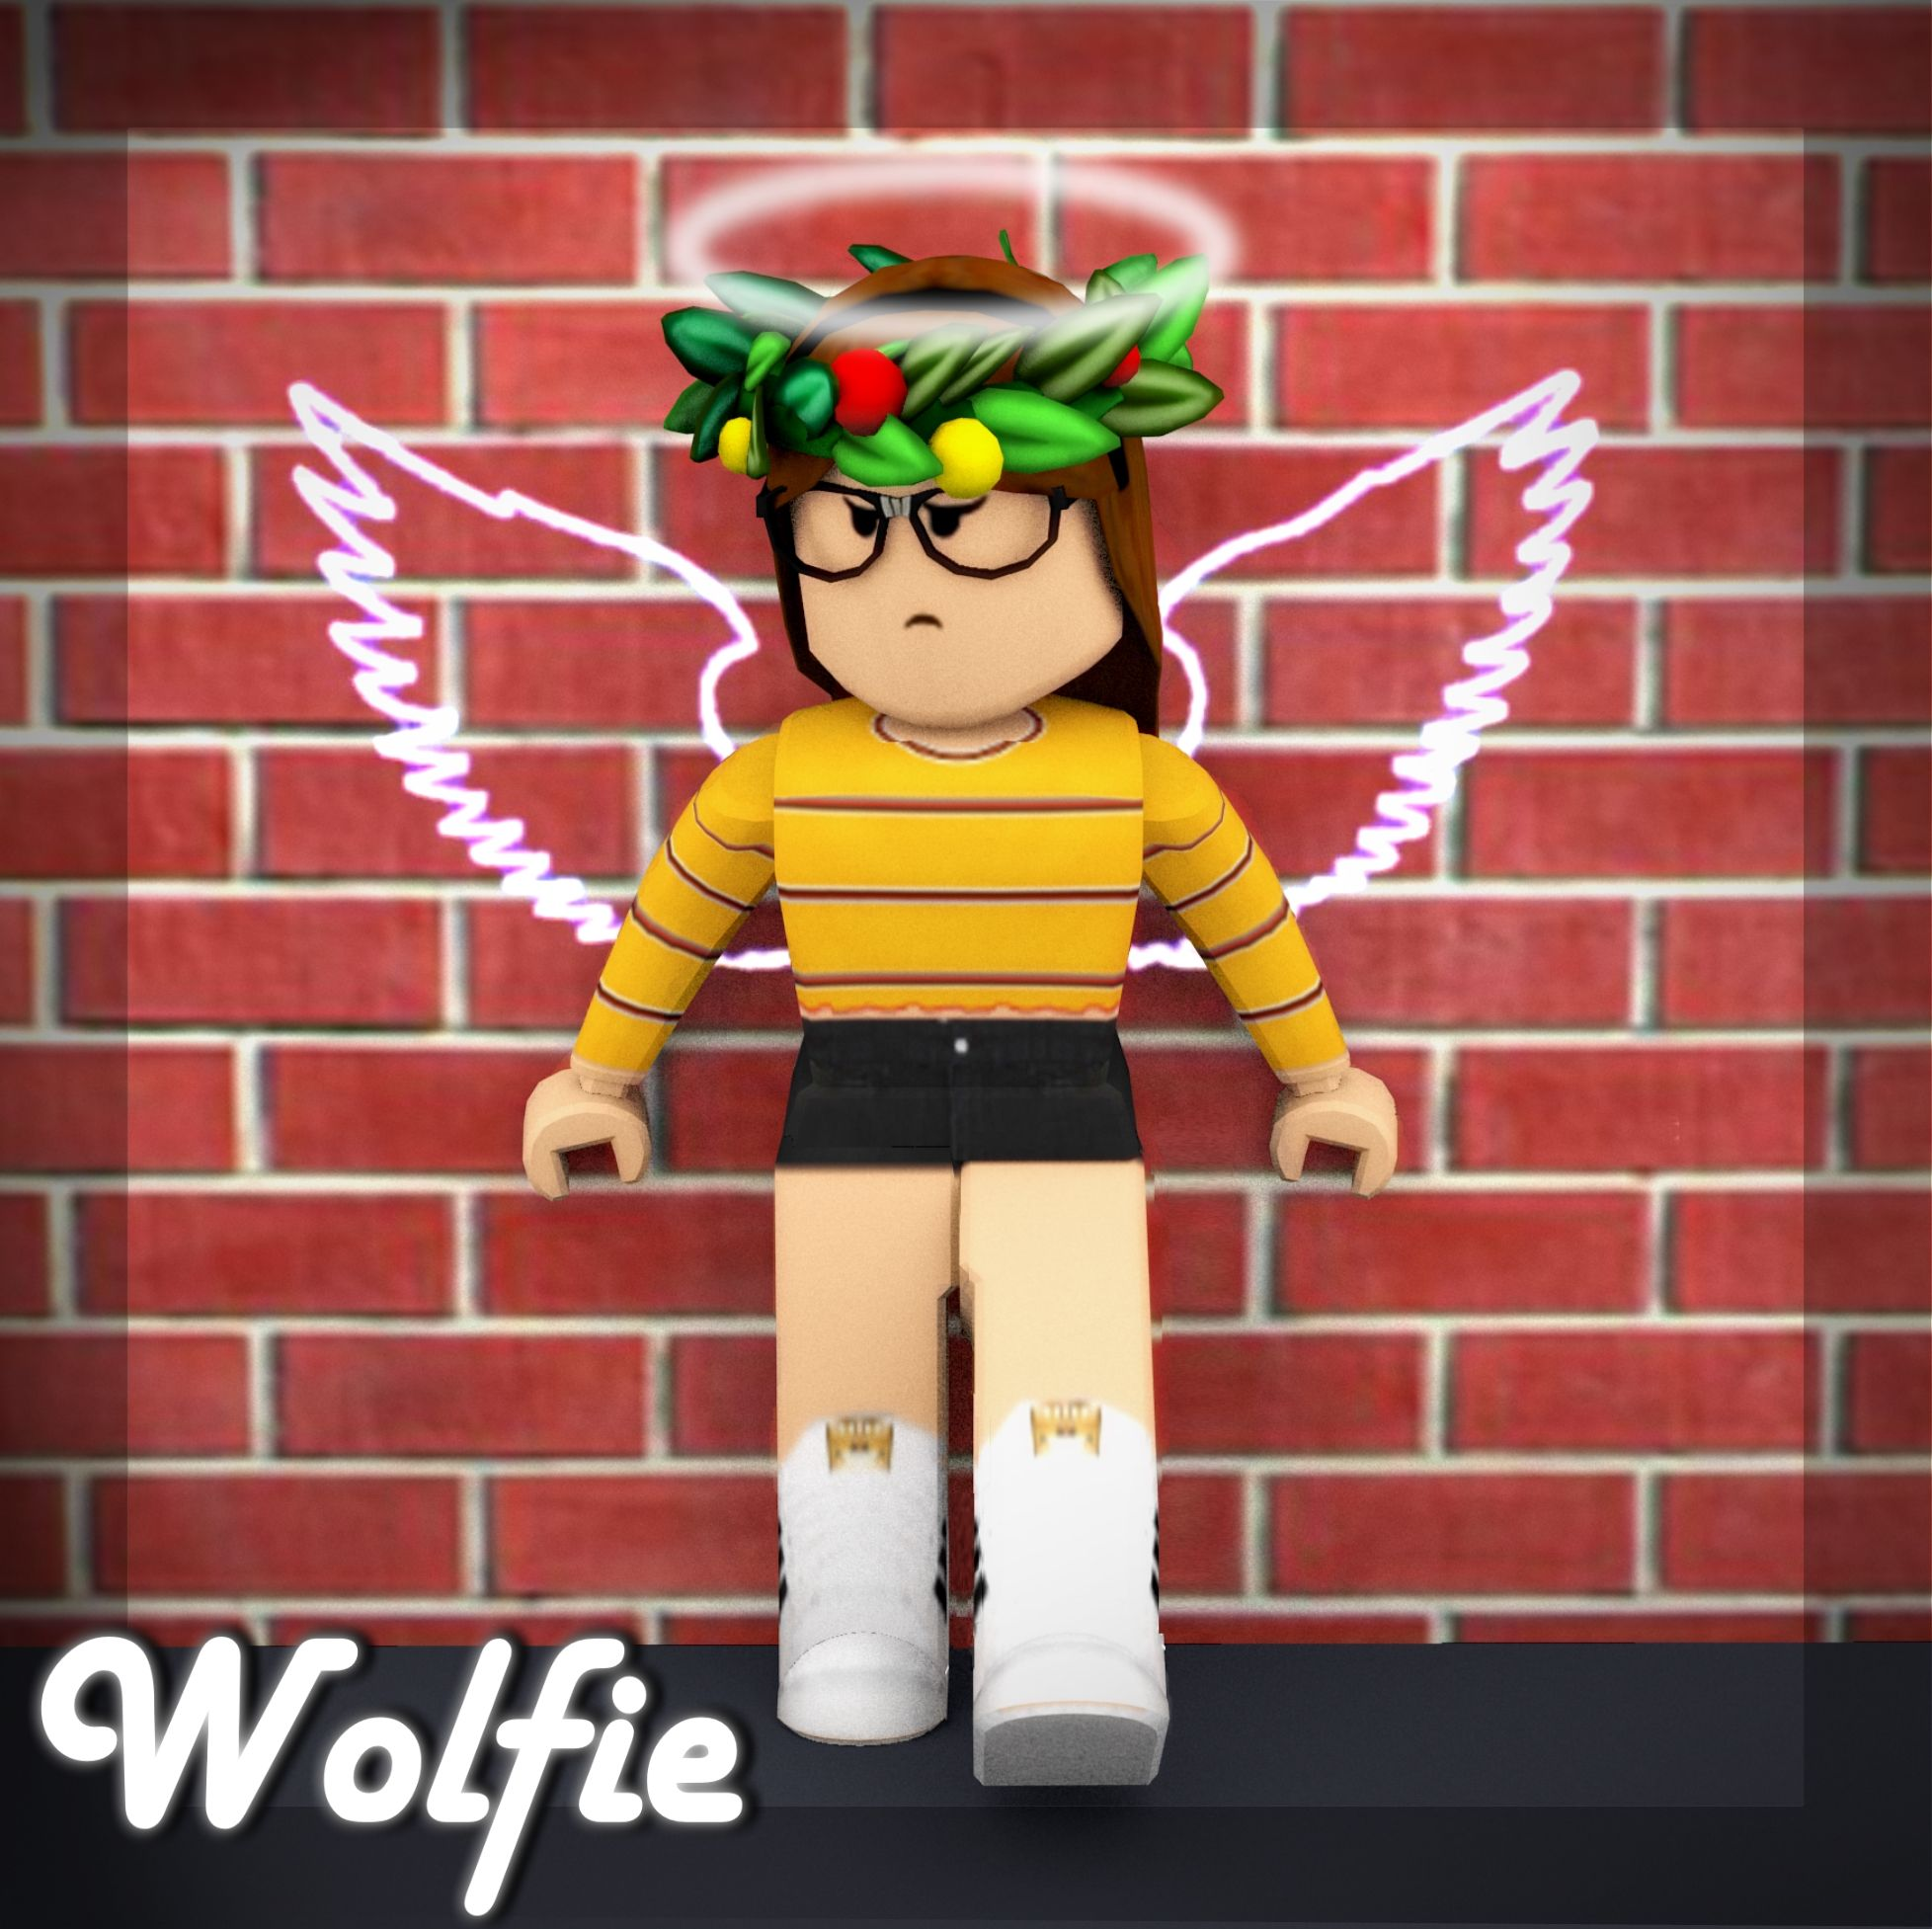 Practice Gfx Gfx By Wolfierocks 01 Roblox Amino Wolfierocks Roblox Wolfierocks 01 Roblox Pictures Roblox Animation Roblox